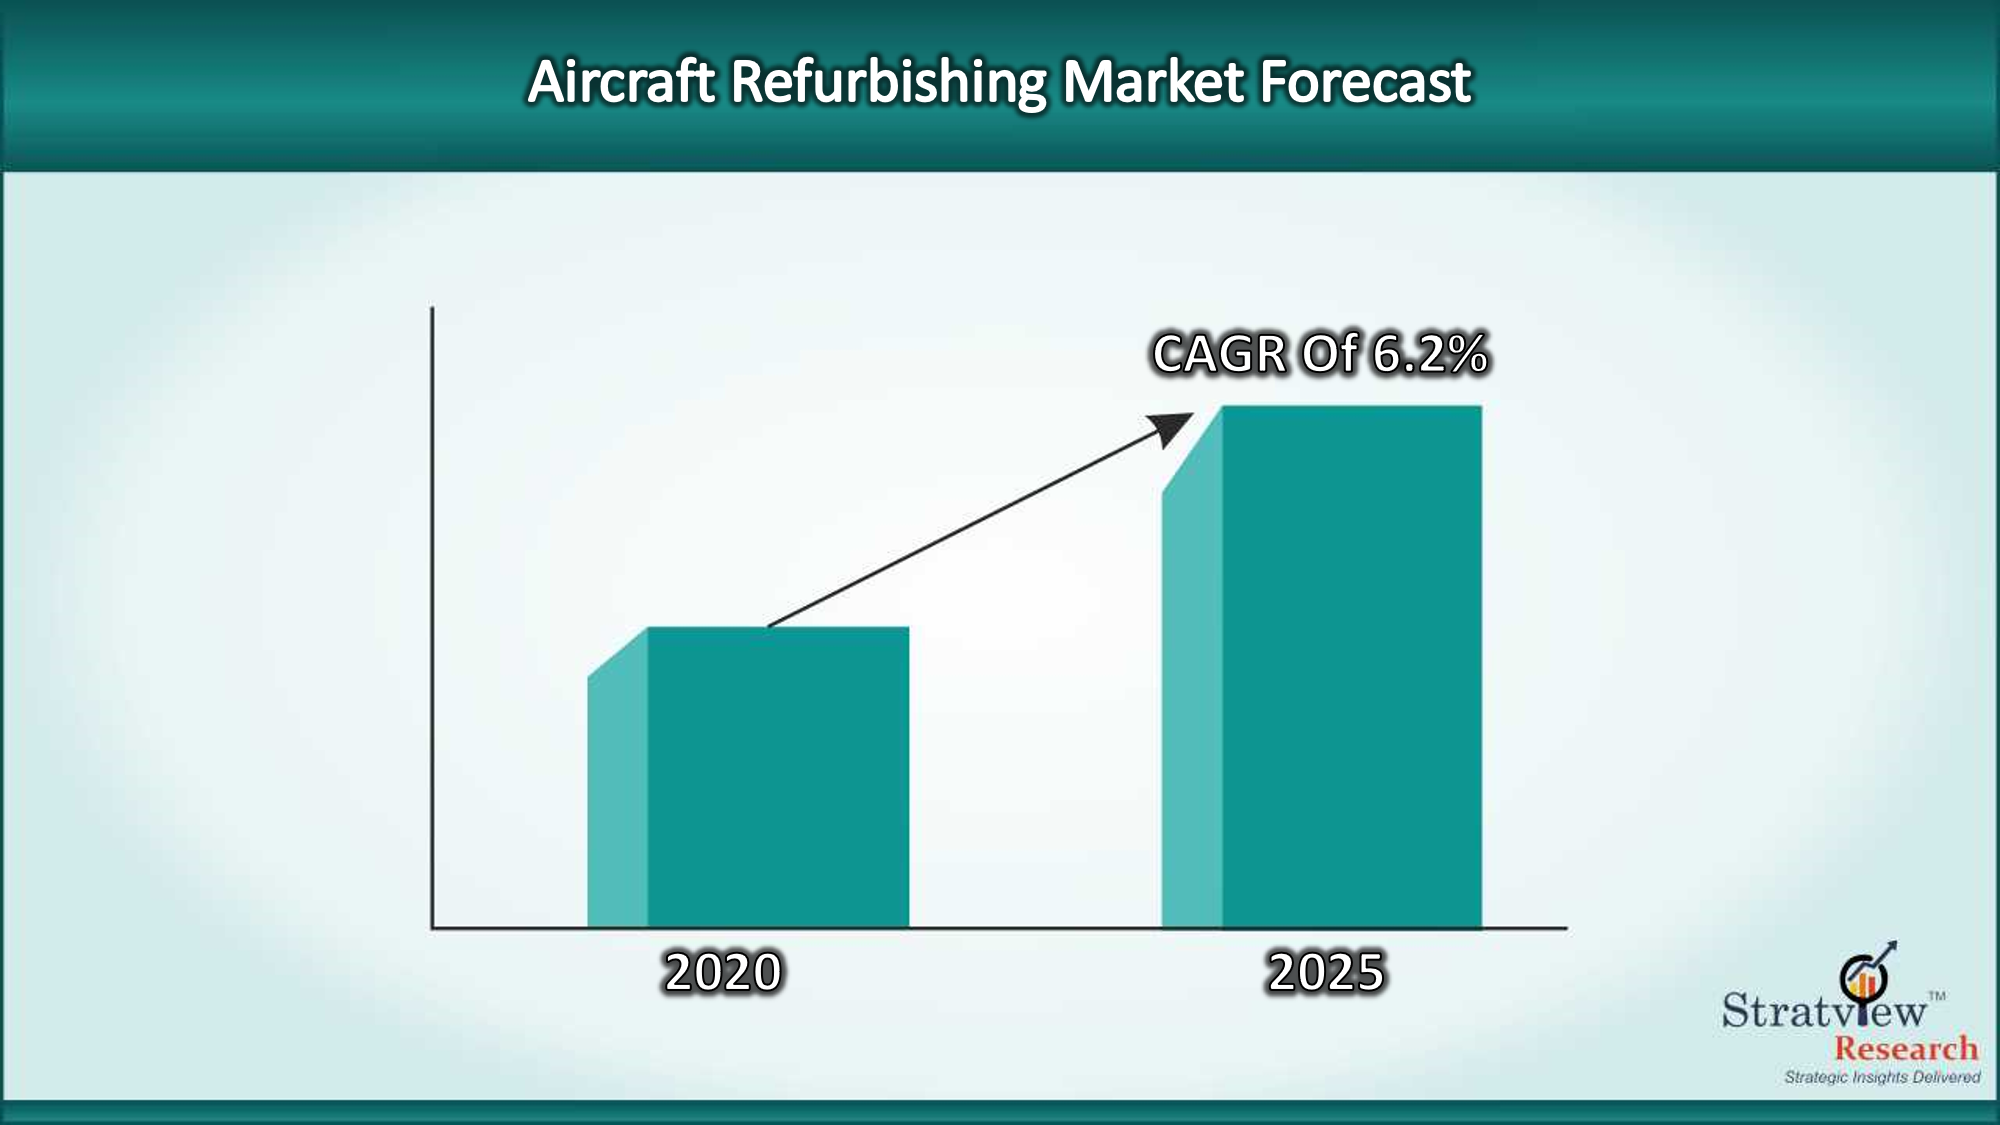 Aircraft Refurbishing Market